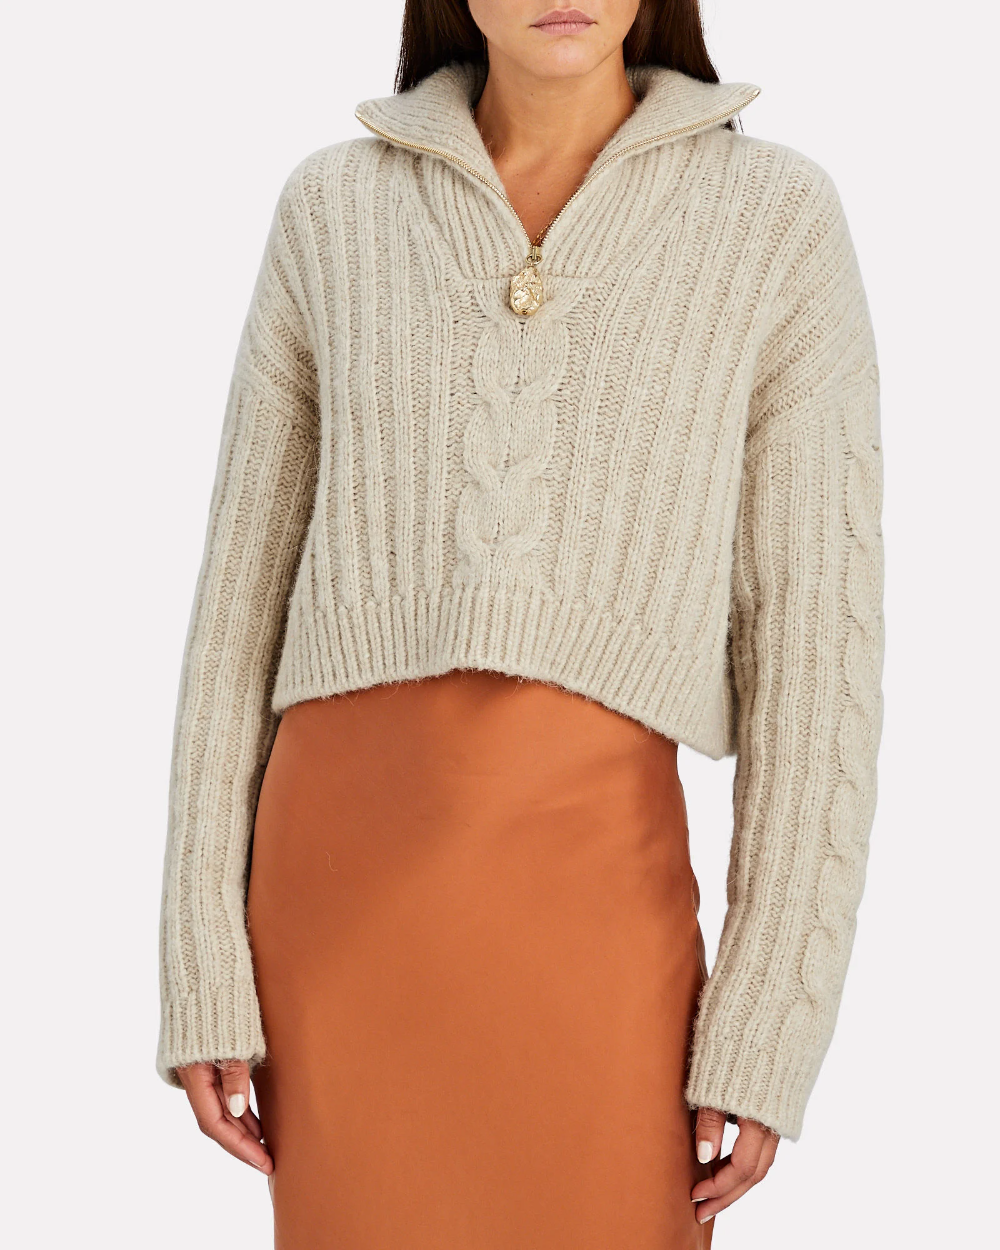 Women/'s Winter Cable Knitted High Neck Cropped Tops Pullover Sweater Jumper UK